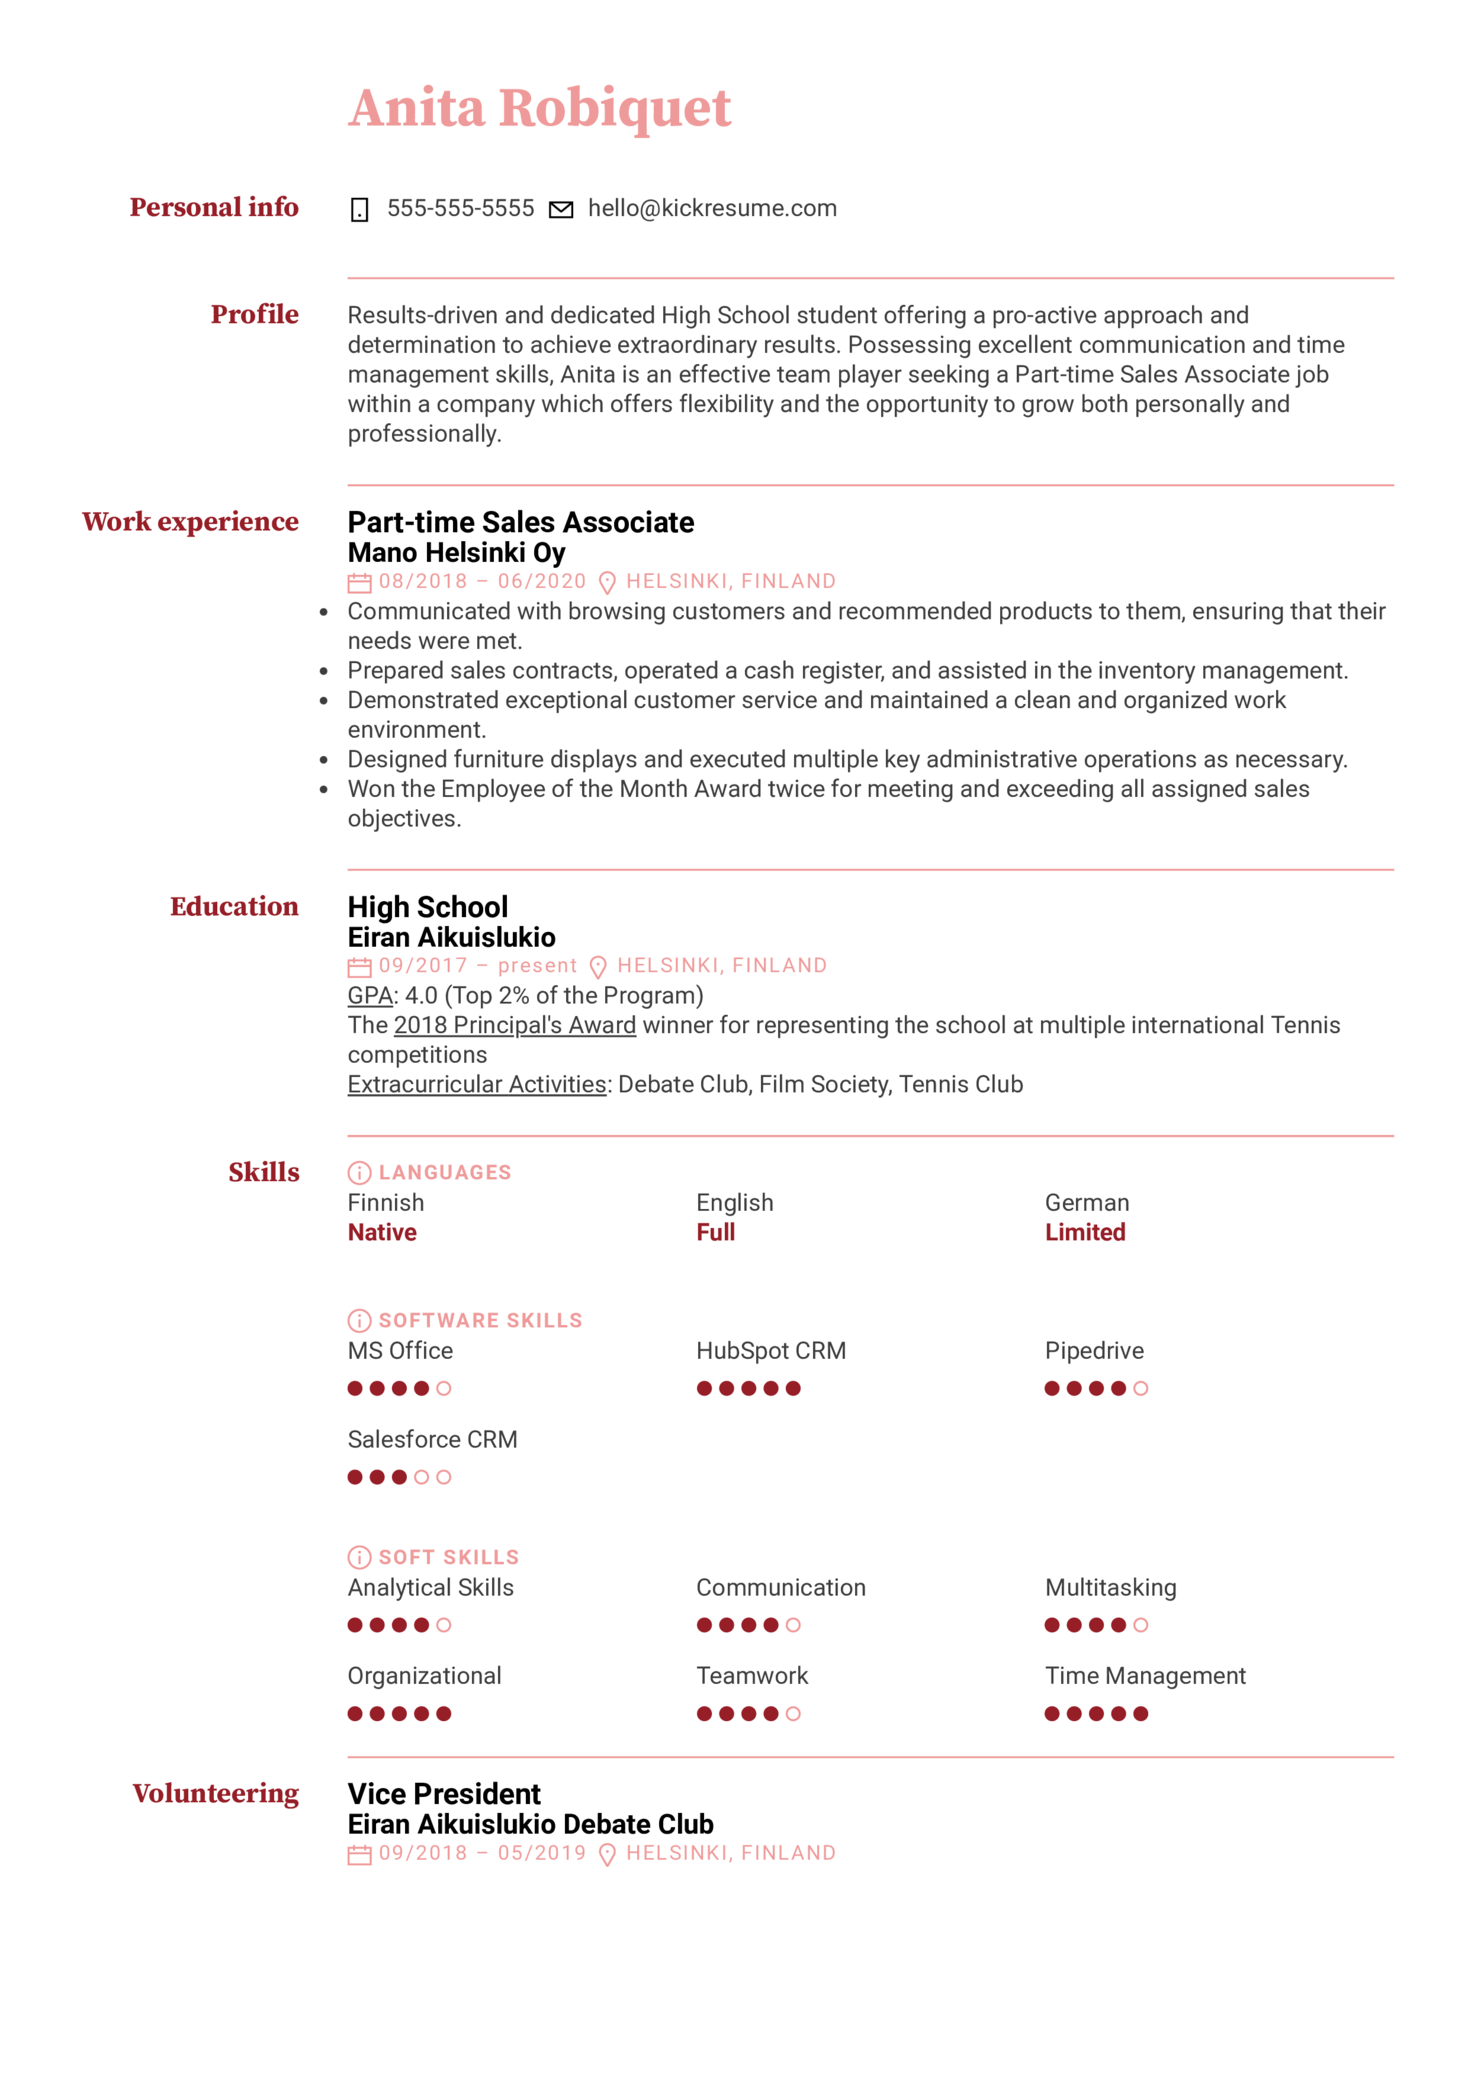 Part-Time Job Resume Example for a Teen (Part 1)